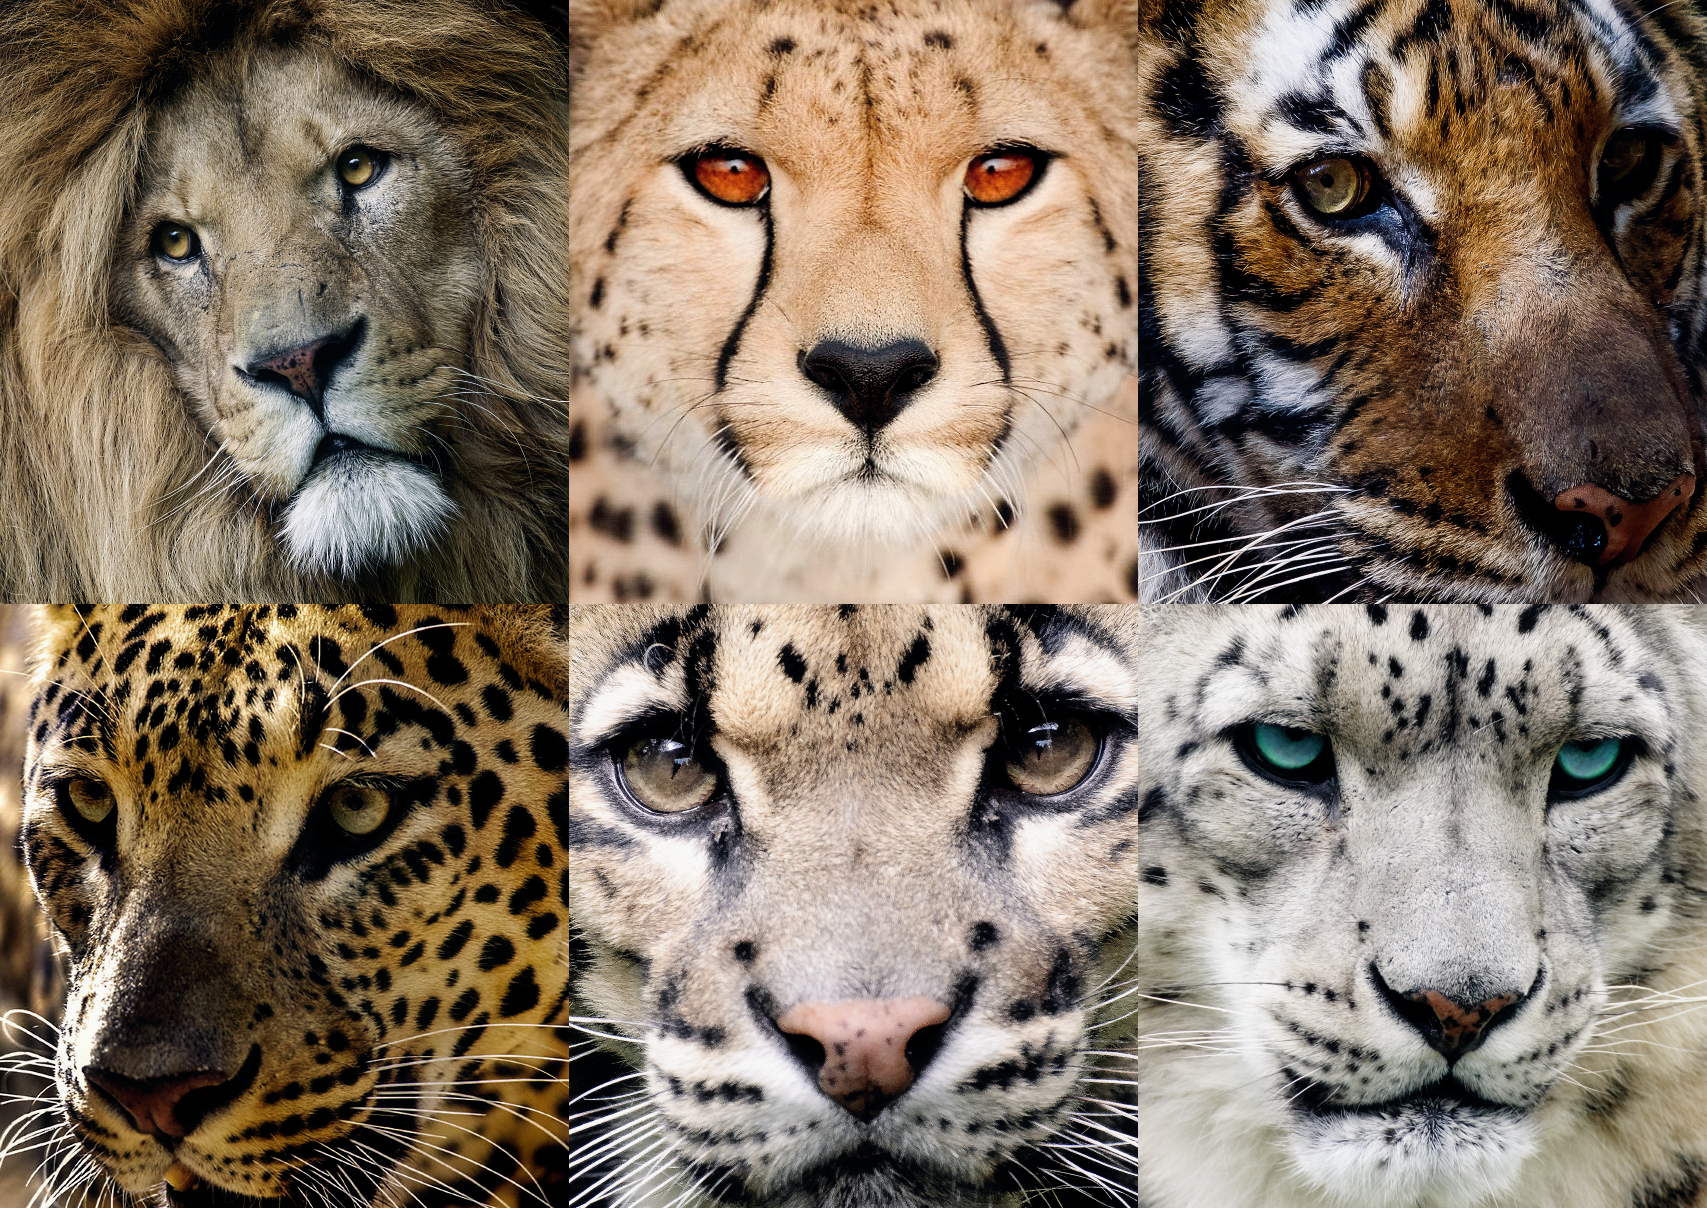 The 6 Big Cats of Asia by Legend-tony980 on DeviantArt